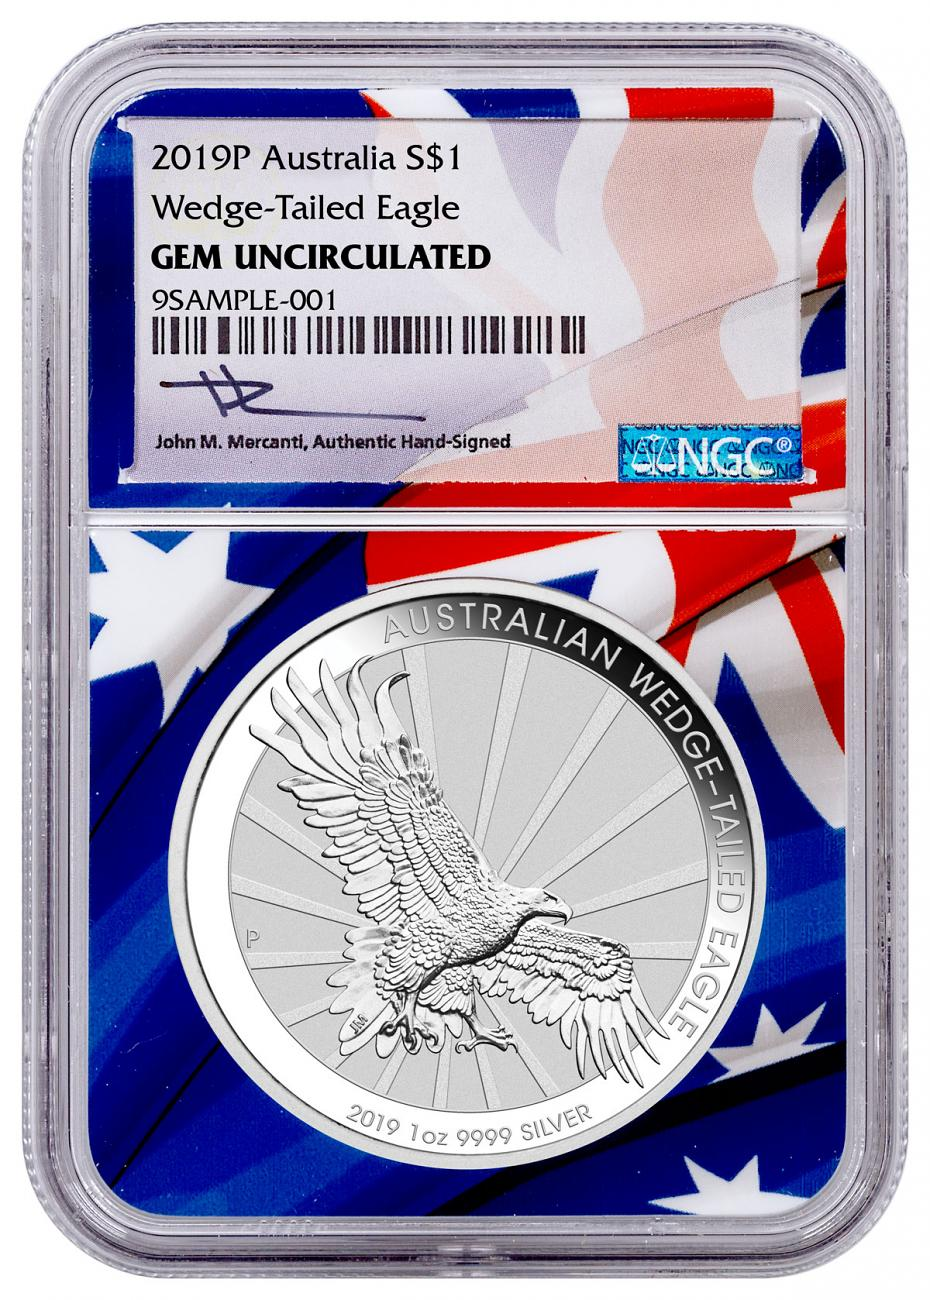 2019-P Australia 1 oz Silver Wedge-Tailed Eagle $1 Coin NGC GEM Unc Flag Core Mercanti Signed Label